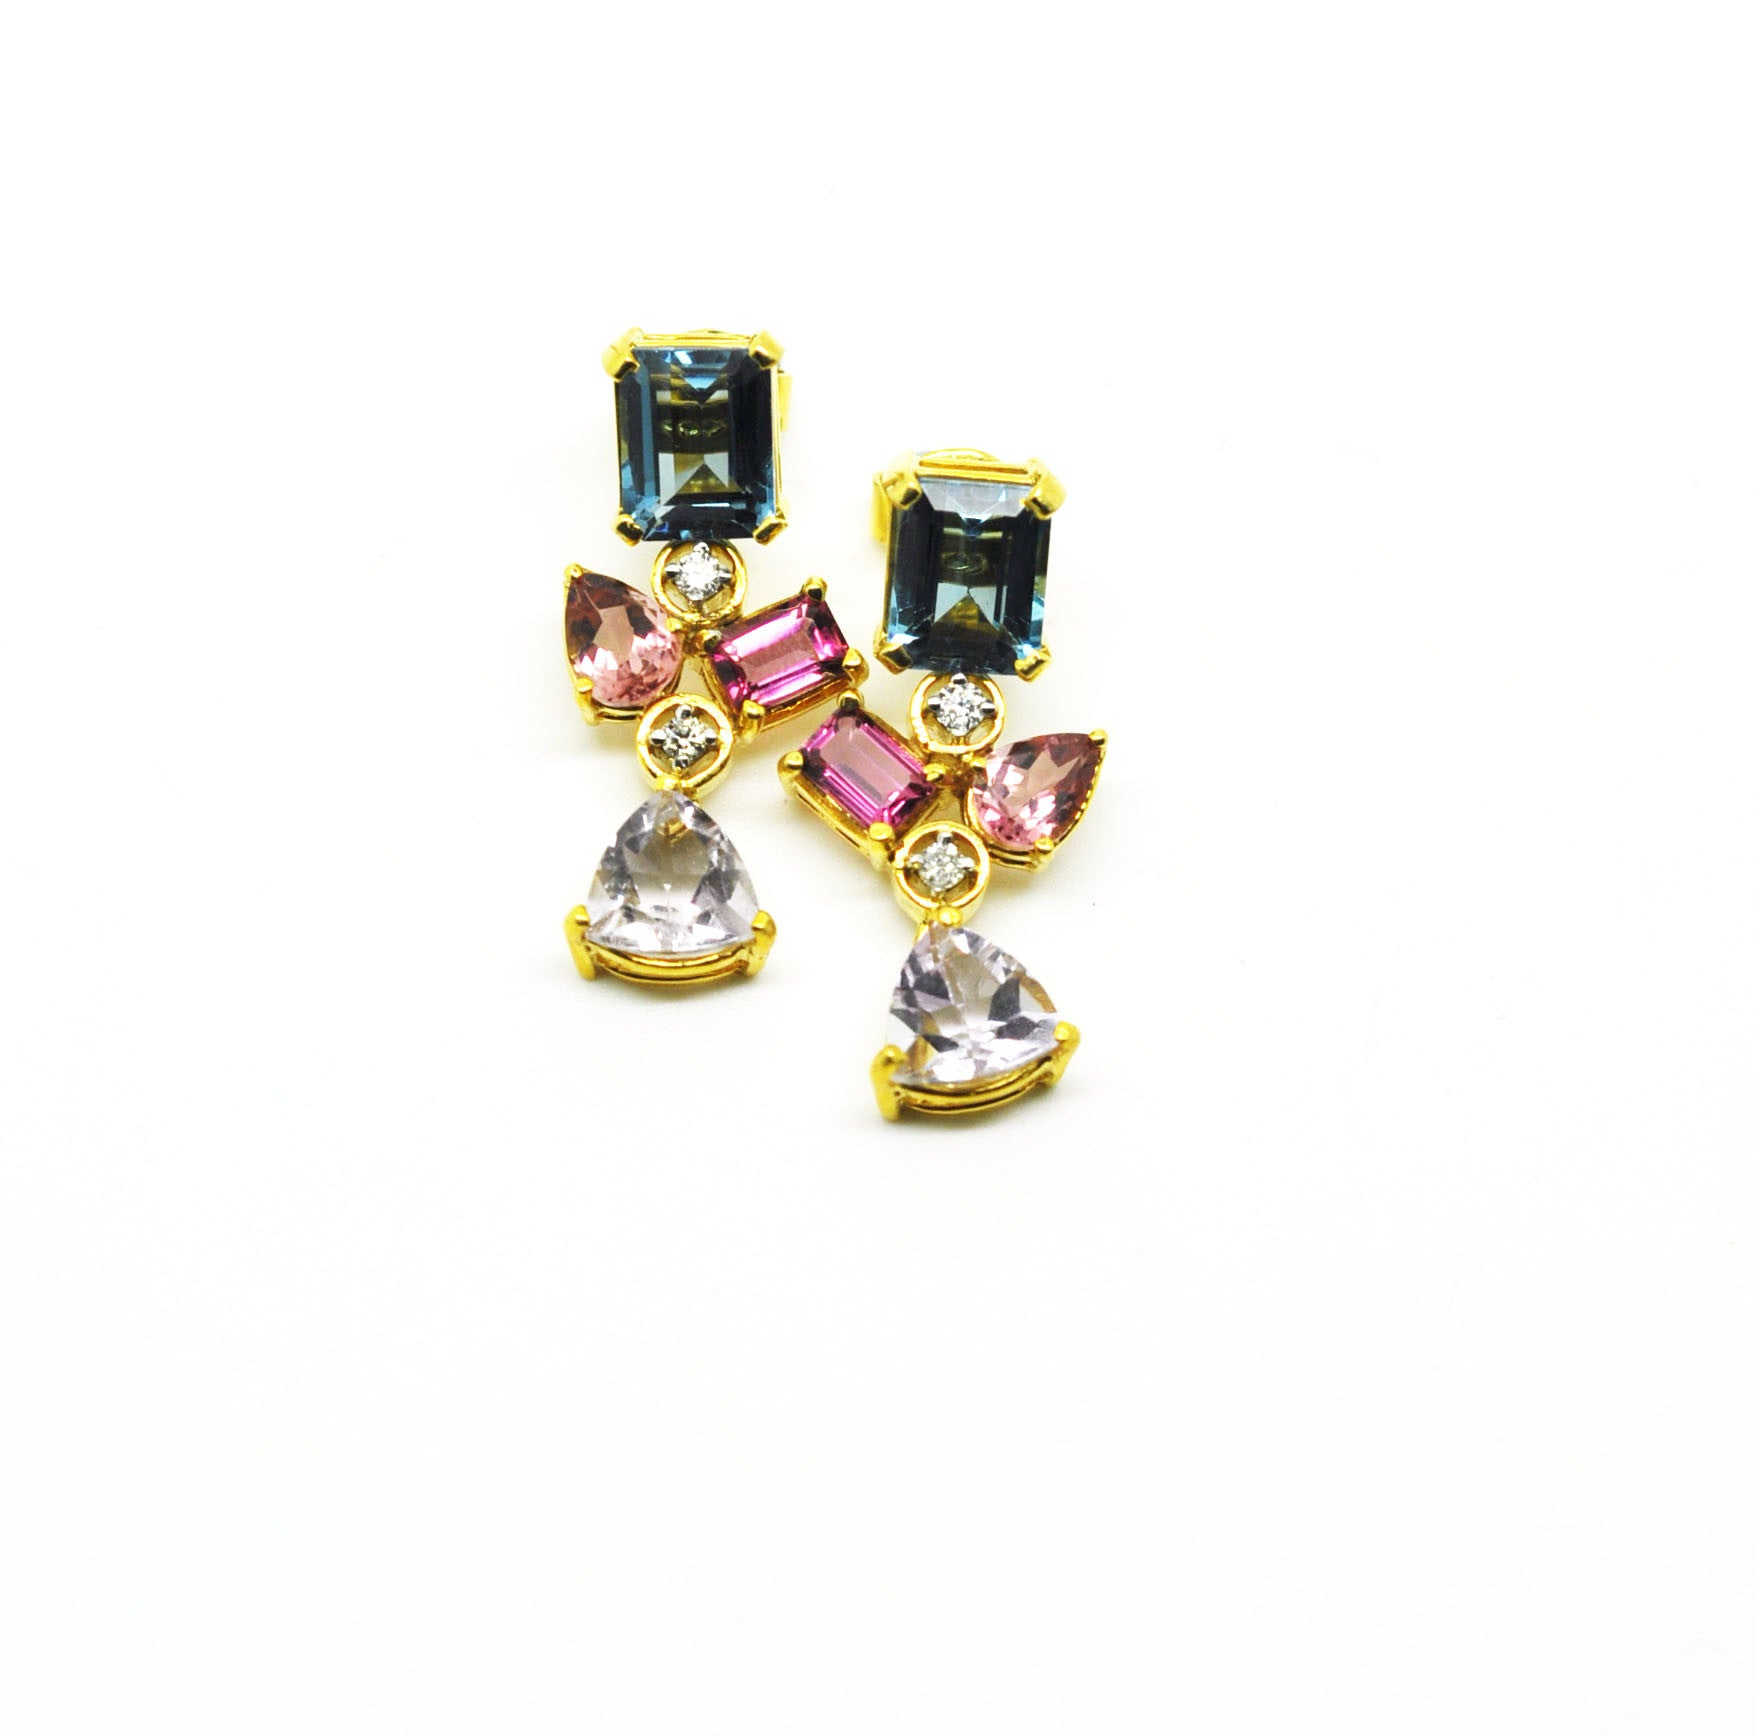 ON SALE - Amethyst, Topaz and tourmaline earring